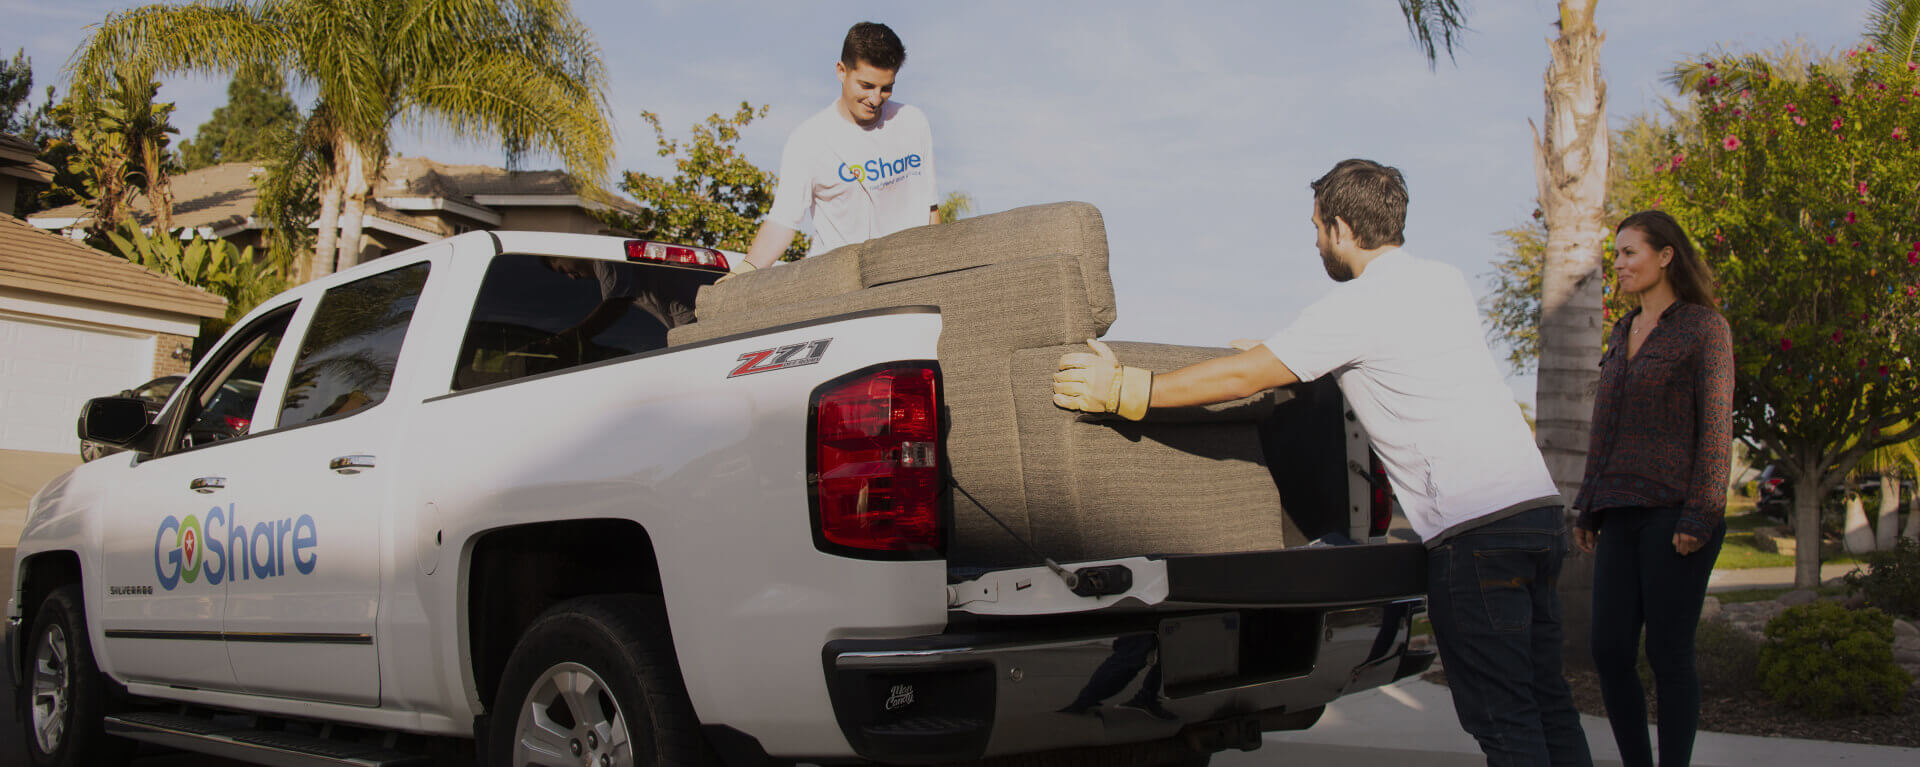 Guys putting man into back of pickup truck clipart picture black and white library Delivery, Truck Rental, Moving Companies, Movers, Shipping | GoShare picture black and white library